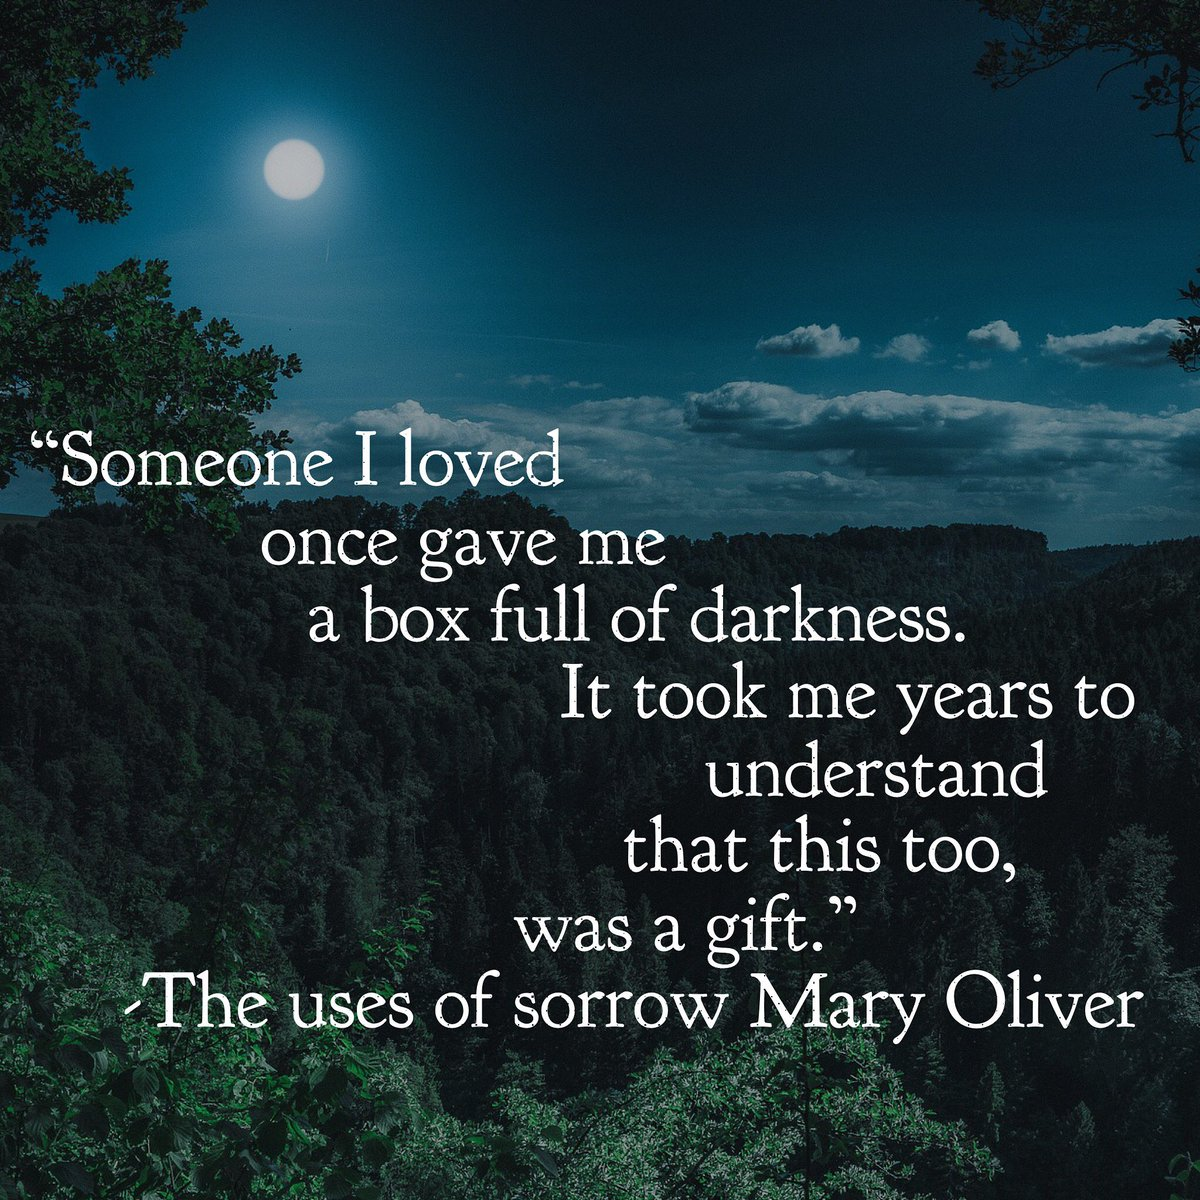 Thank God for Mary Oliver